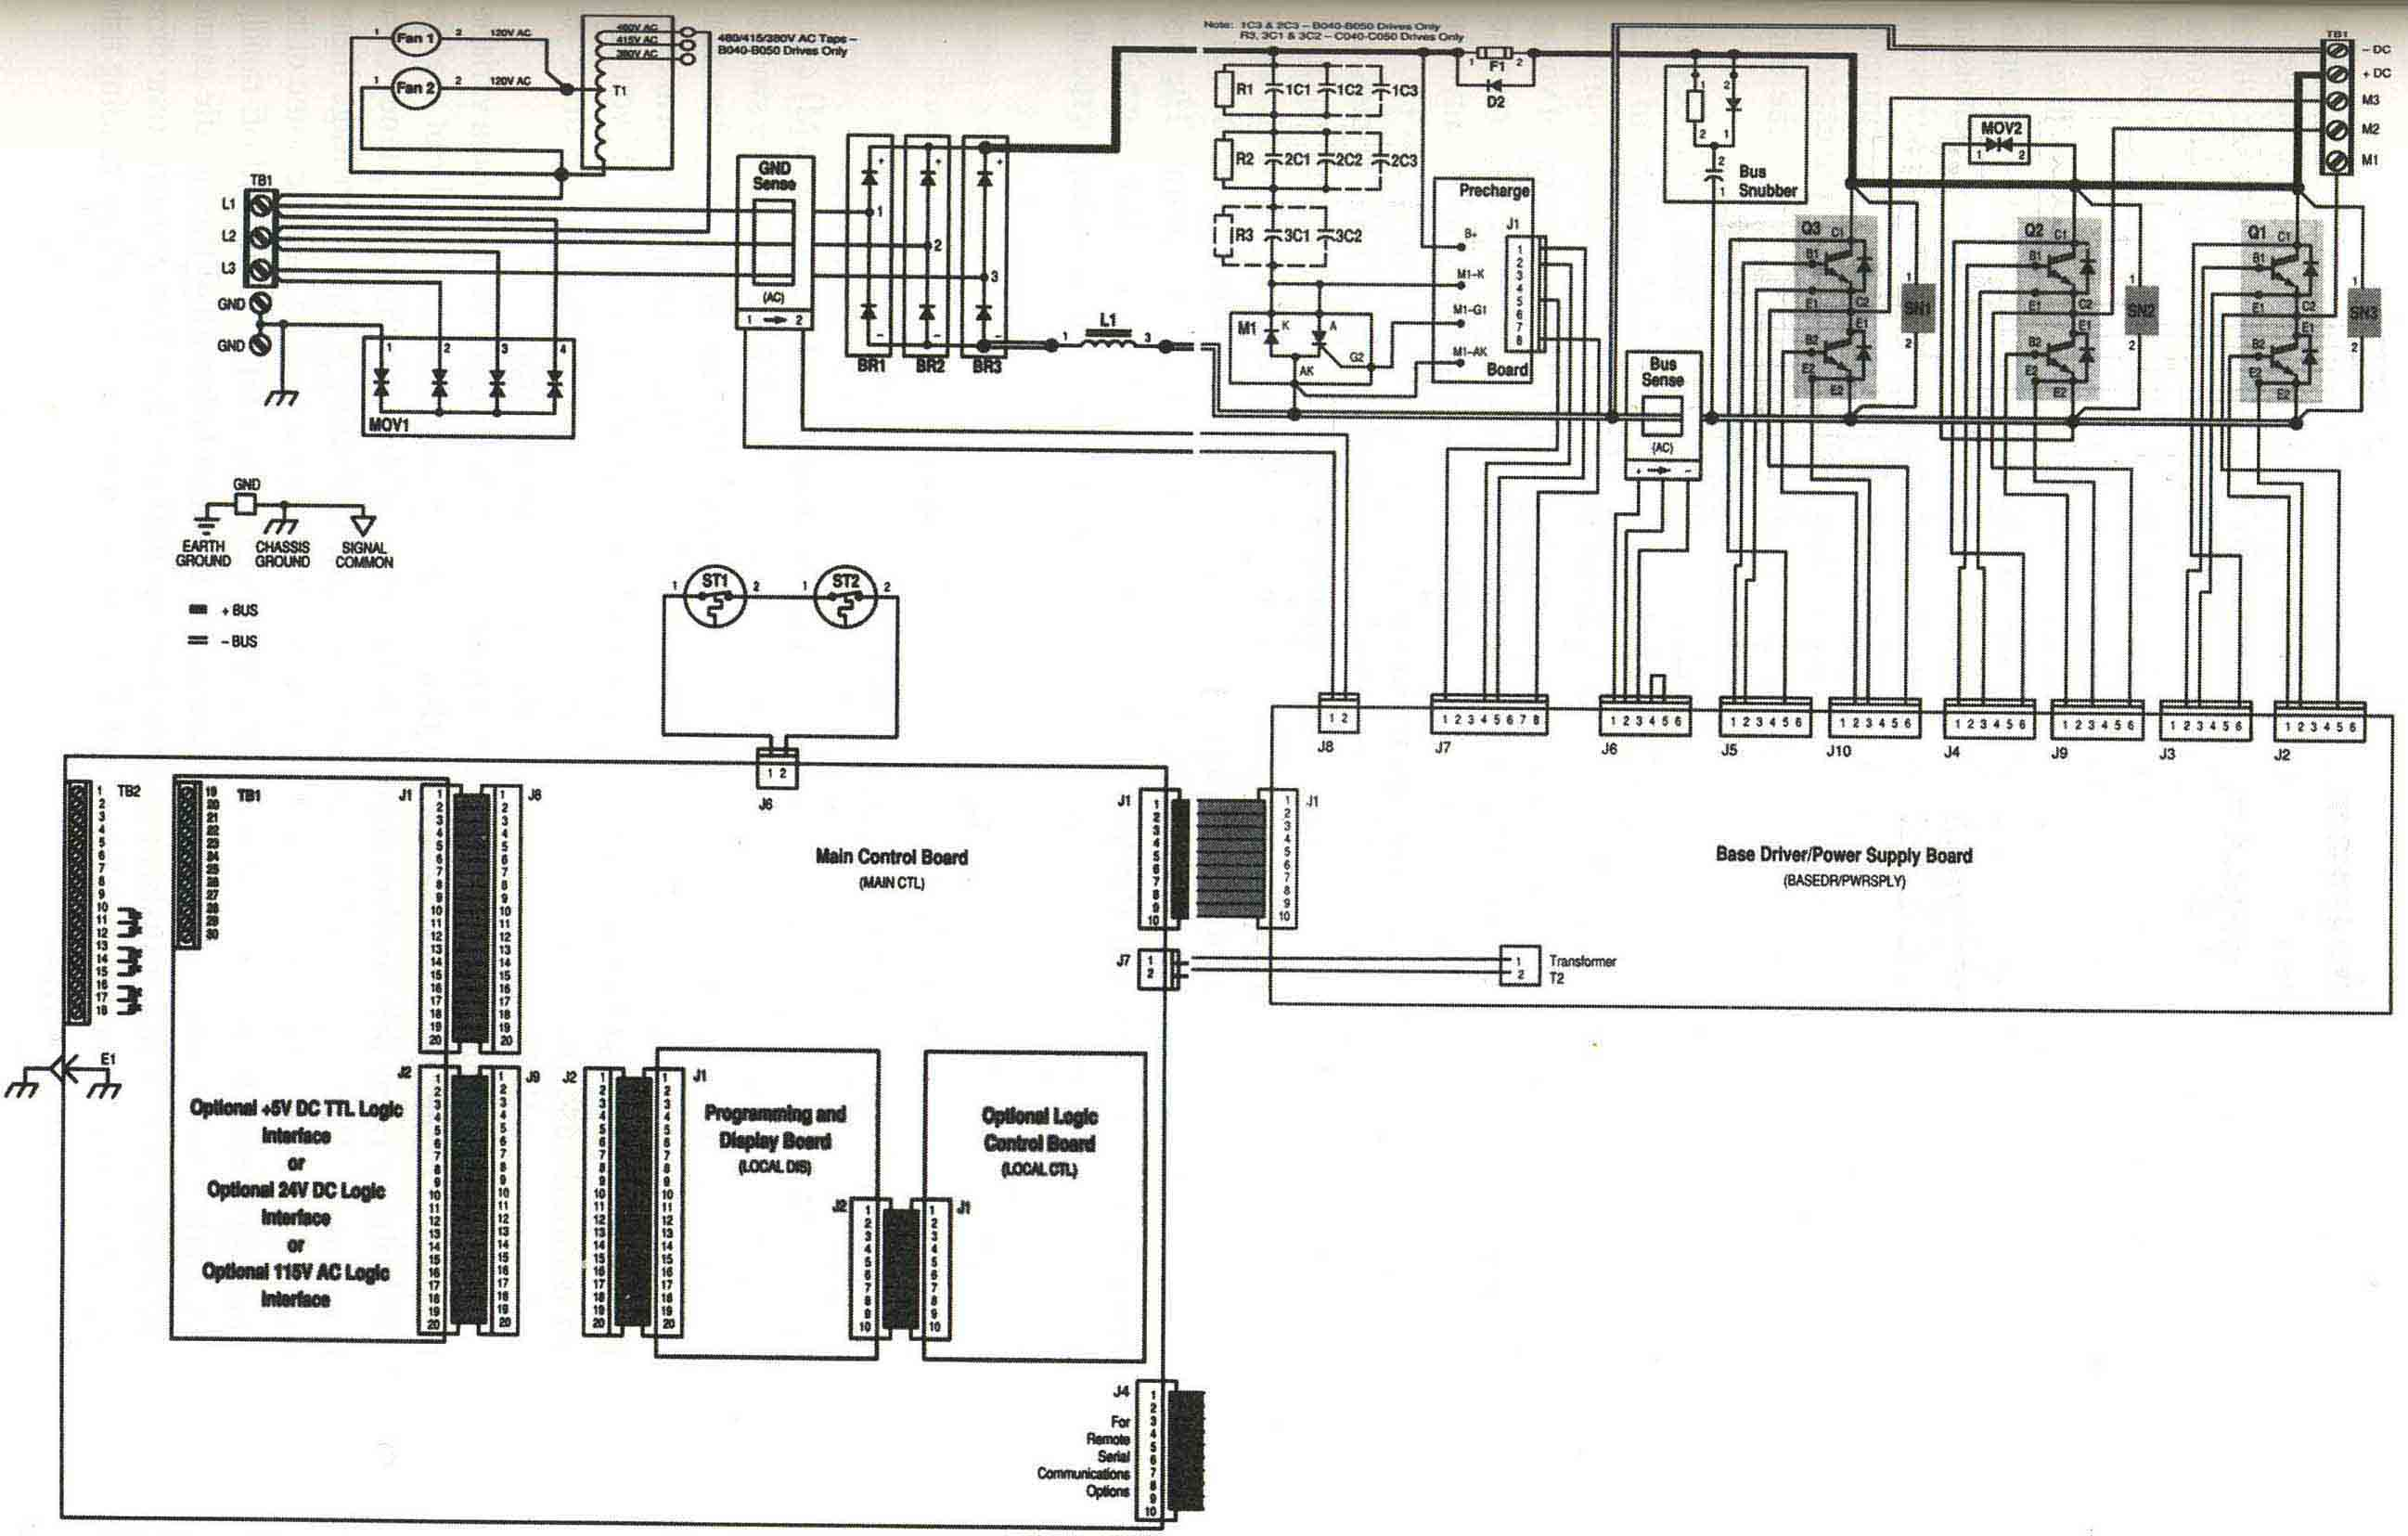 Variac Wiring Diagram 21 Images Diagrams Gibson Allen Bradley 1336 Schematic 100 Transformer Possible 2002